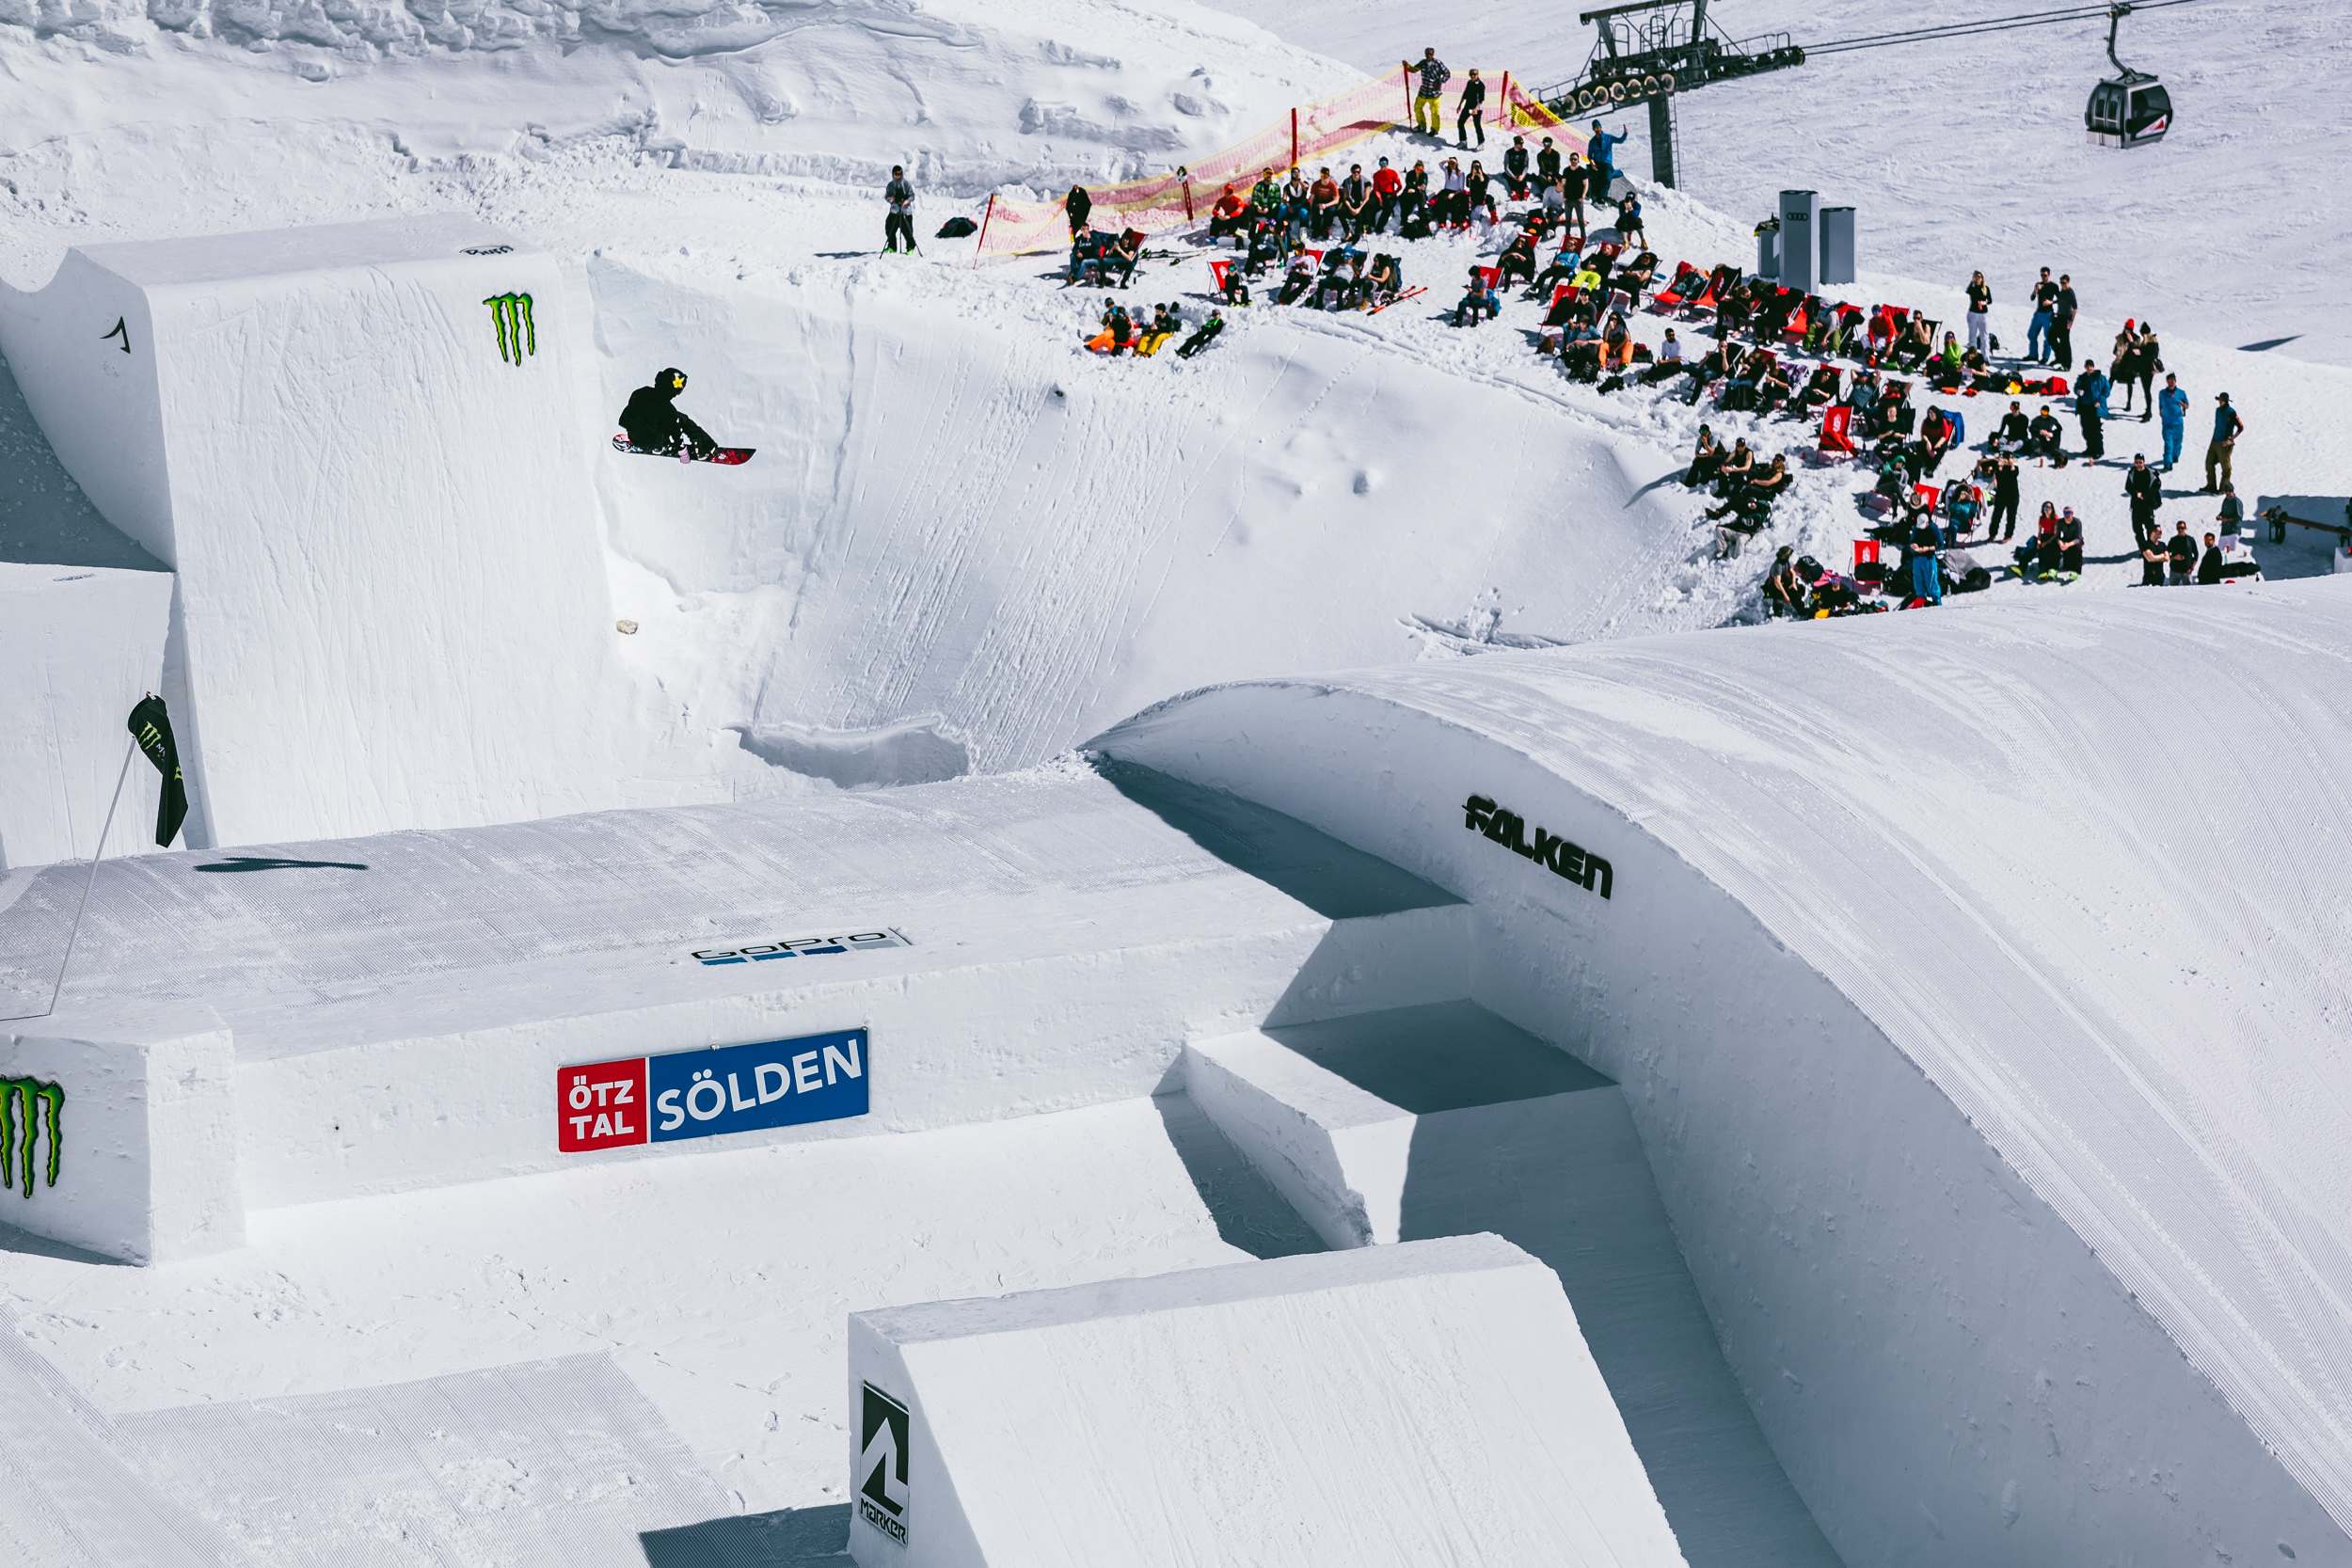 Hailey Langland winning the Women's Snowboard Big Air at the 2018 Audi Nines